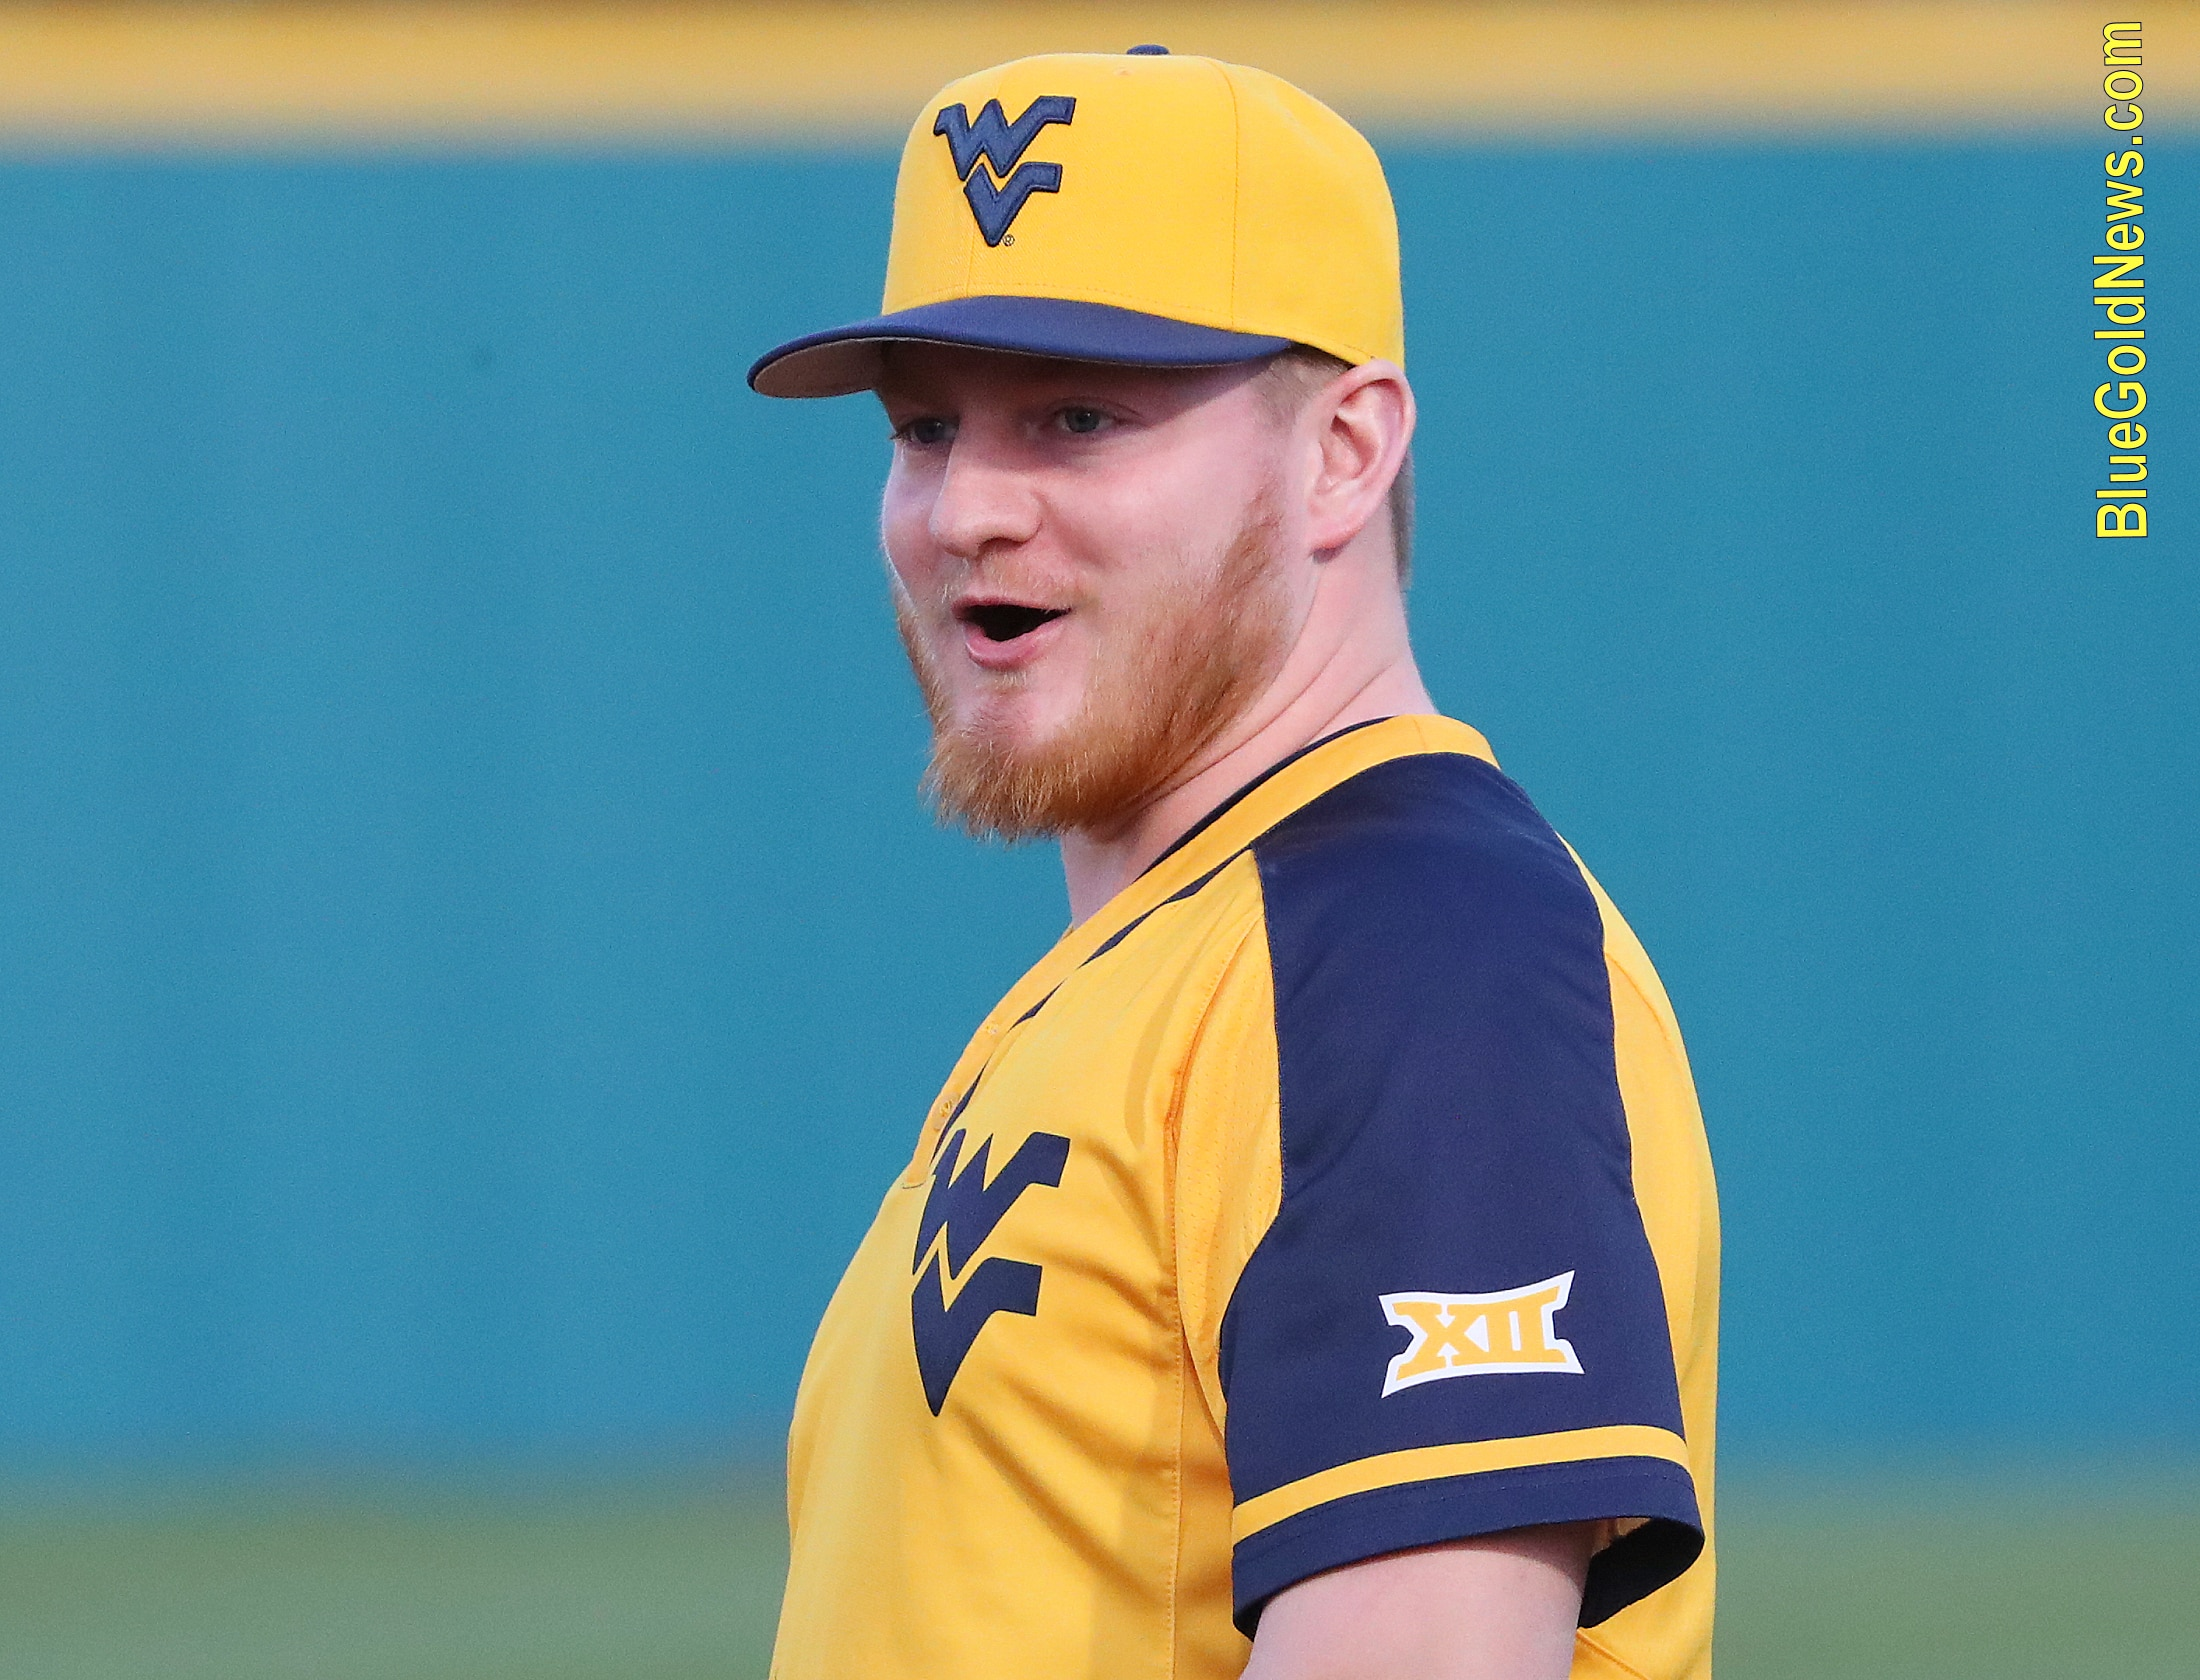 West Virginia infielder Matt McCormick reacts to cheers from the dugout after a diving stop